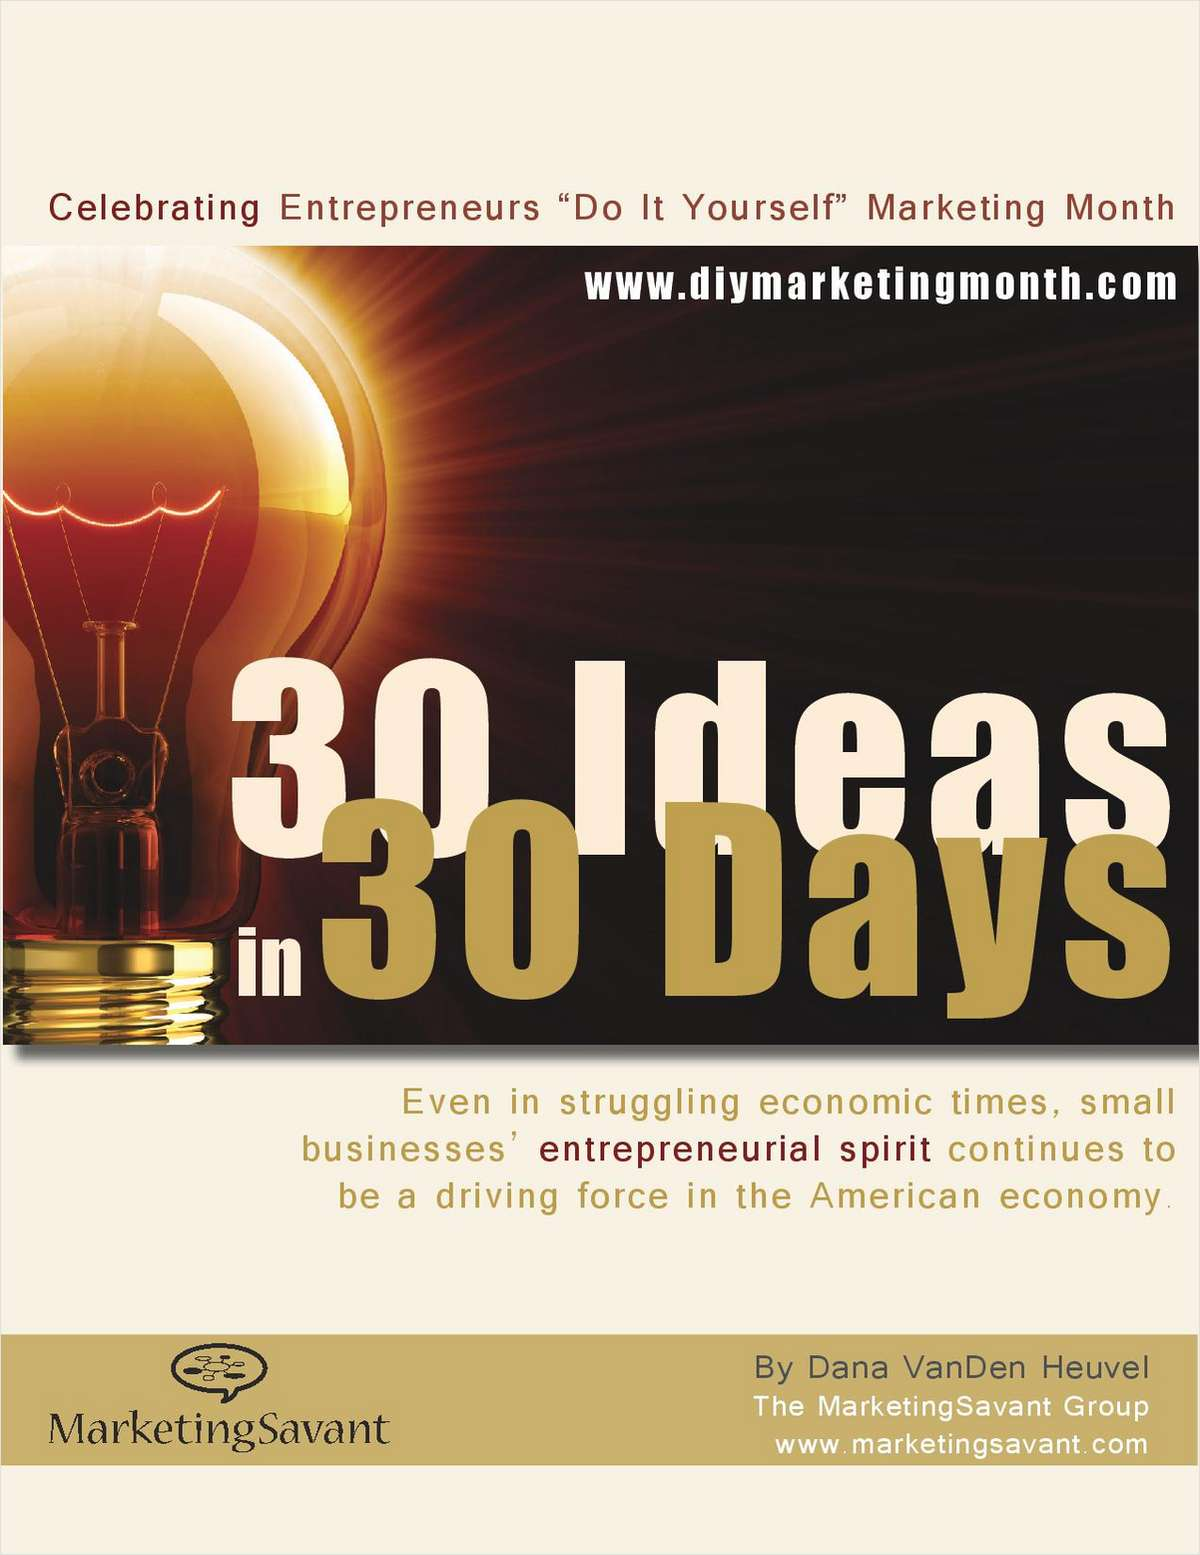 30 Marketing Ideas in 30 Days – Entrepreneurs DIY Marketing Guide